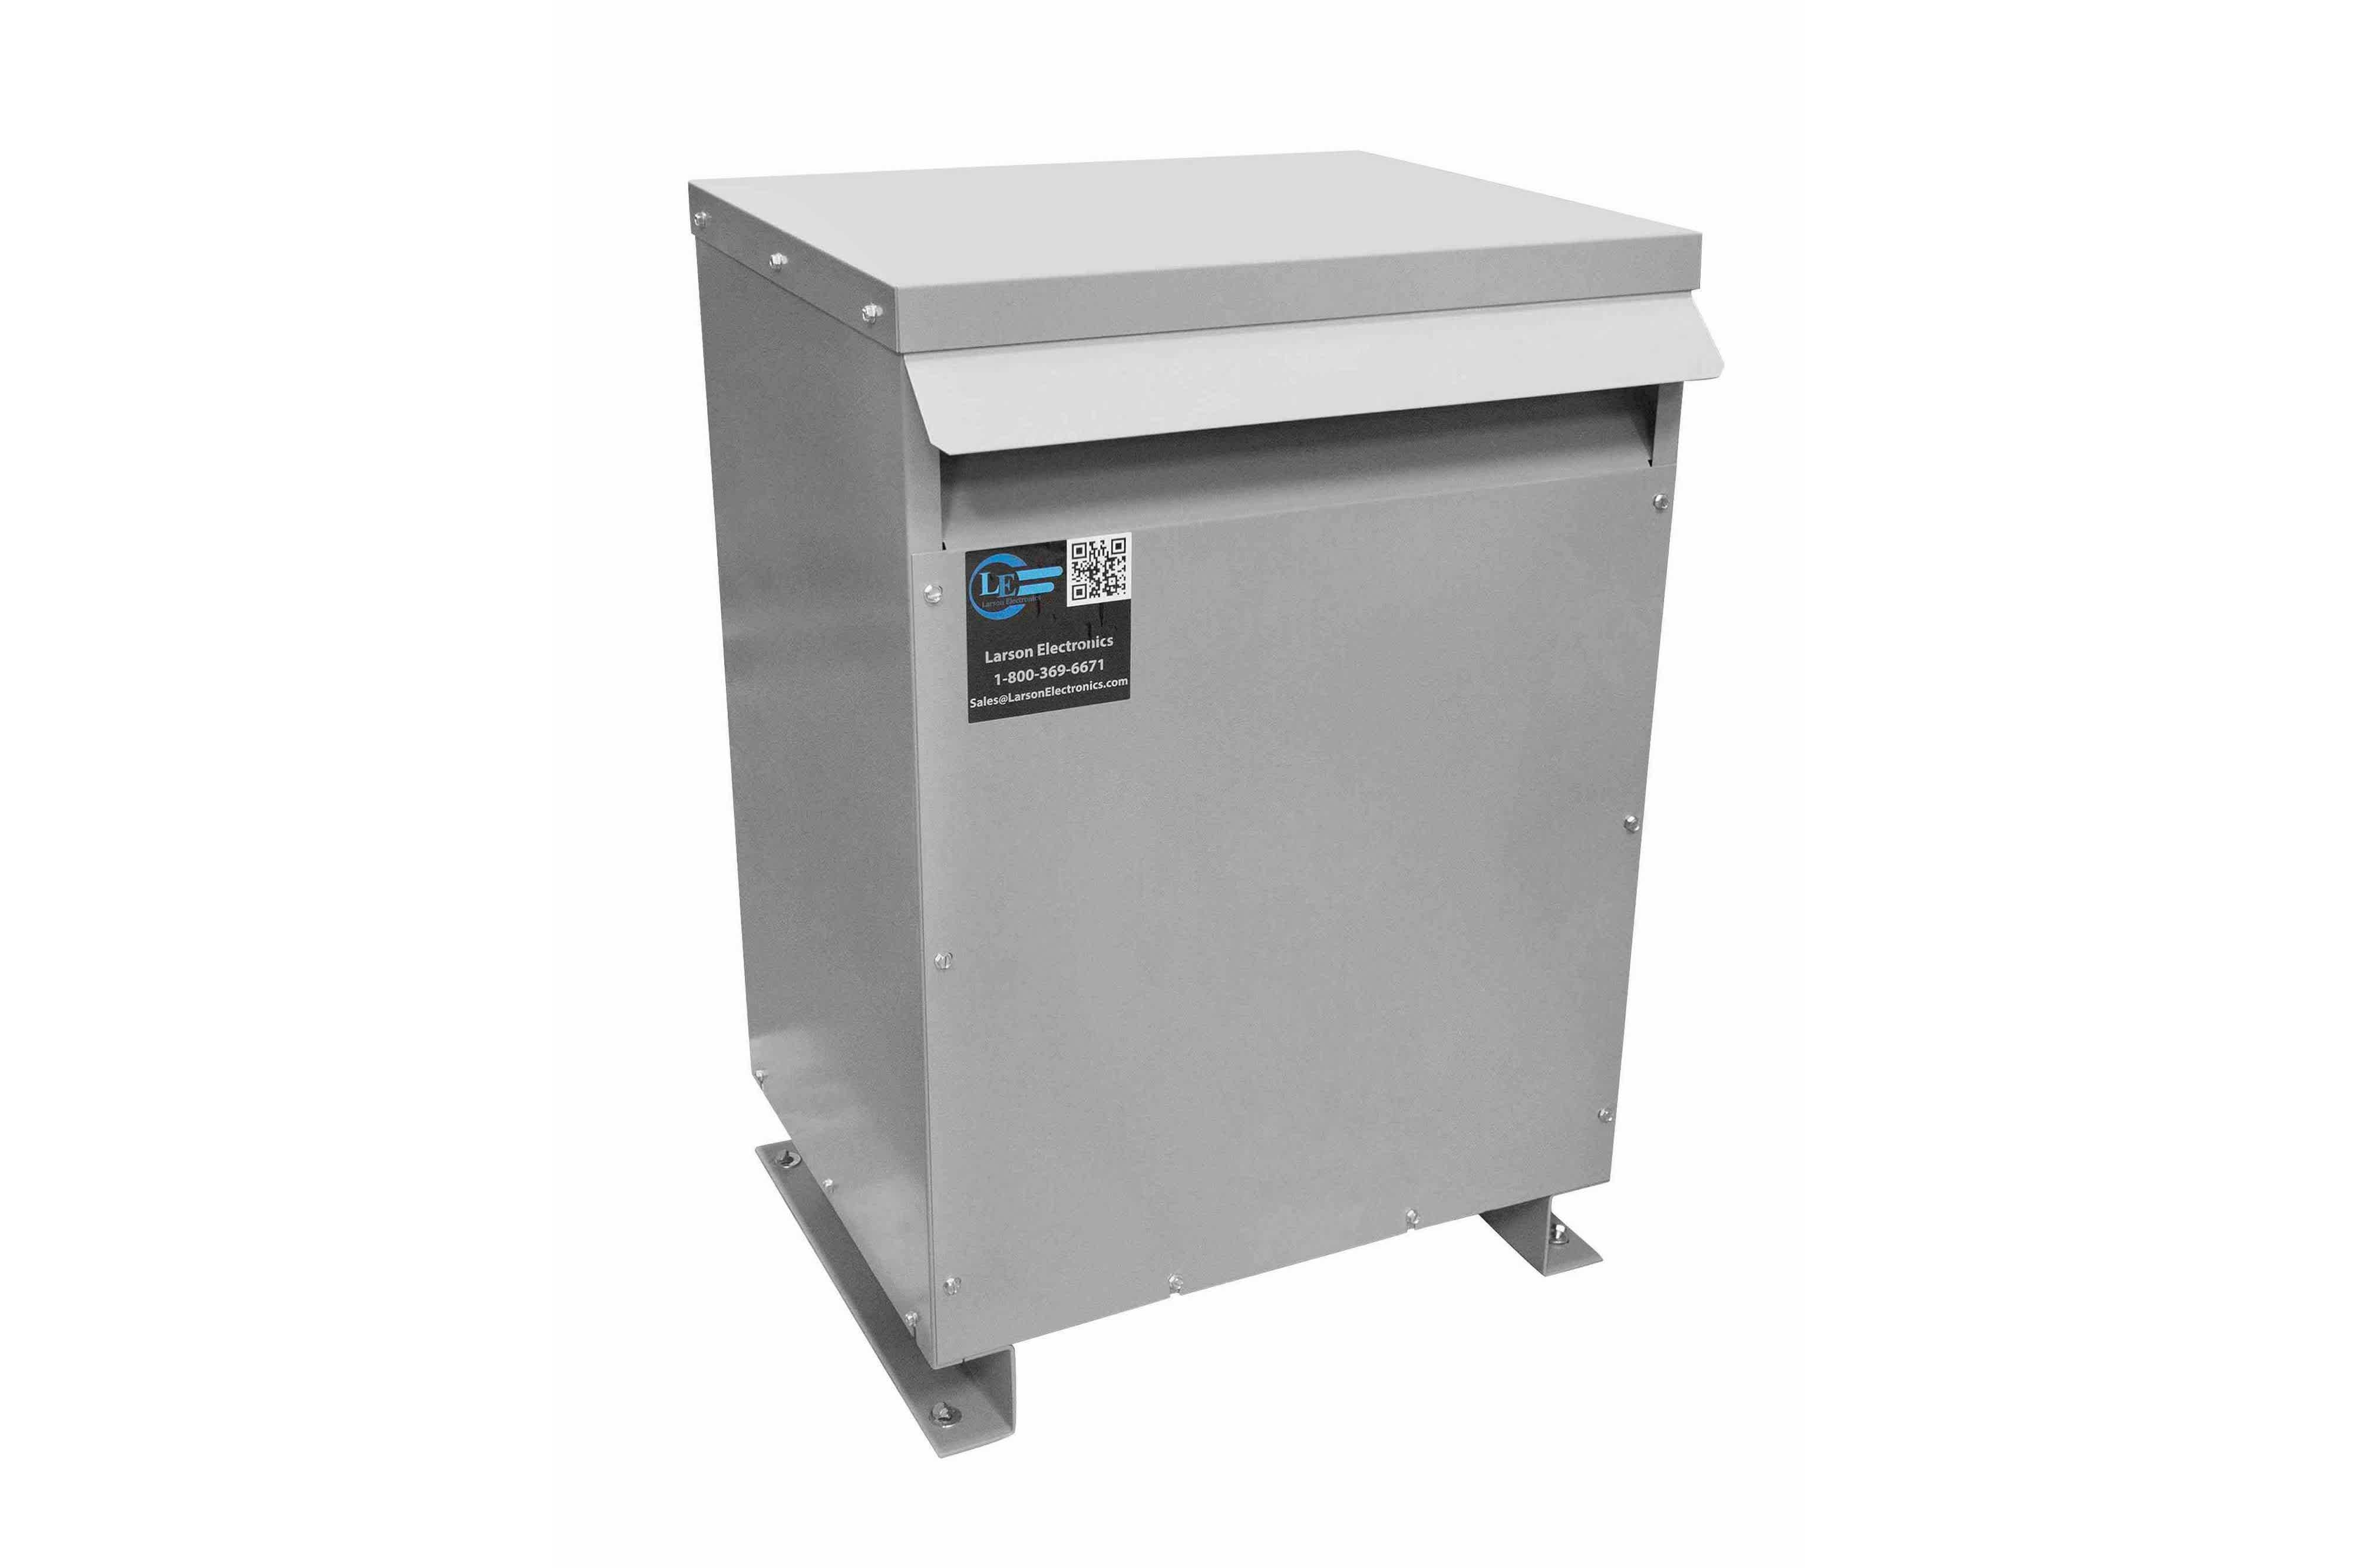 28 kVA 3PH Isolation Transformer, 575V Wye Primary, 240V/120 Delta Secondary, N3R, Ventilated, 60 Hz